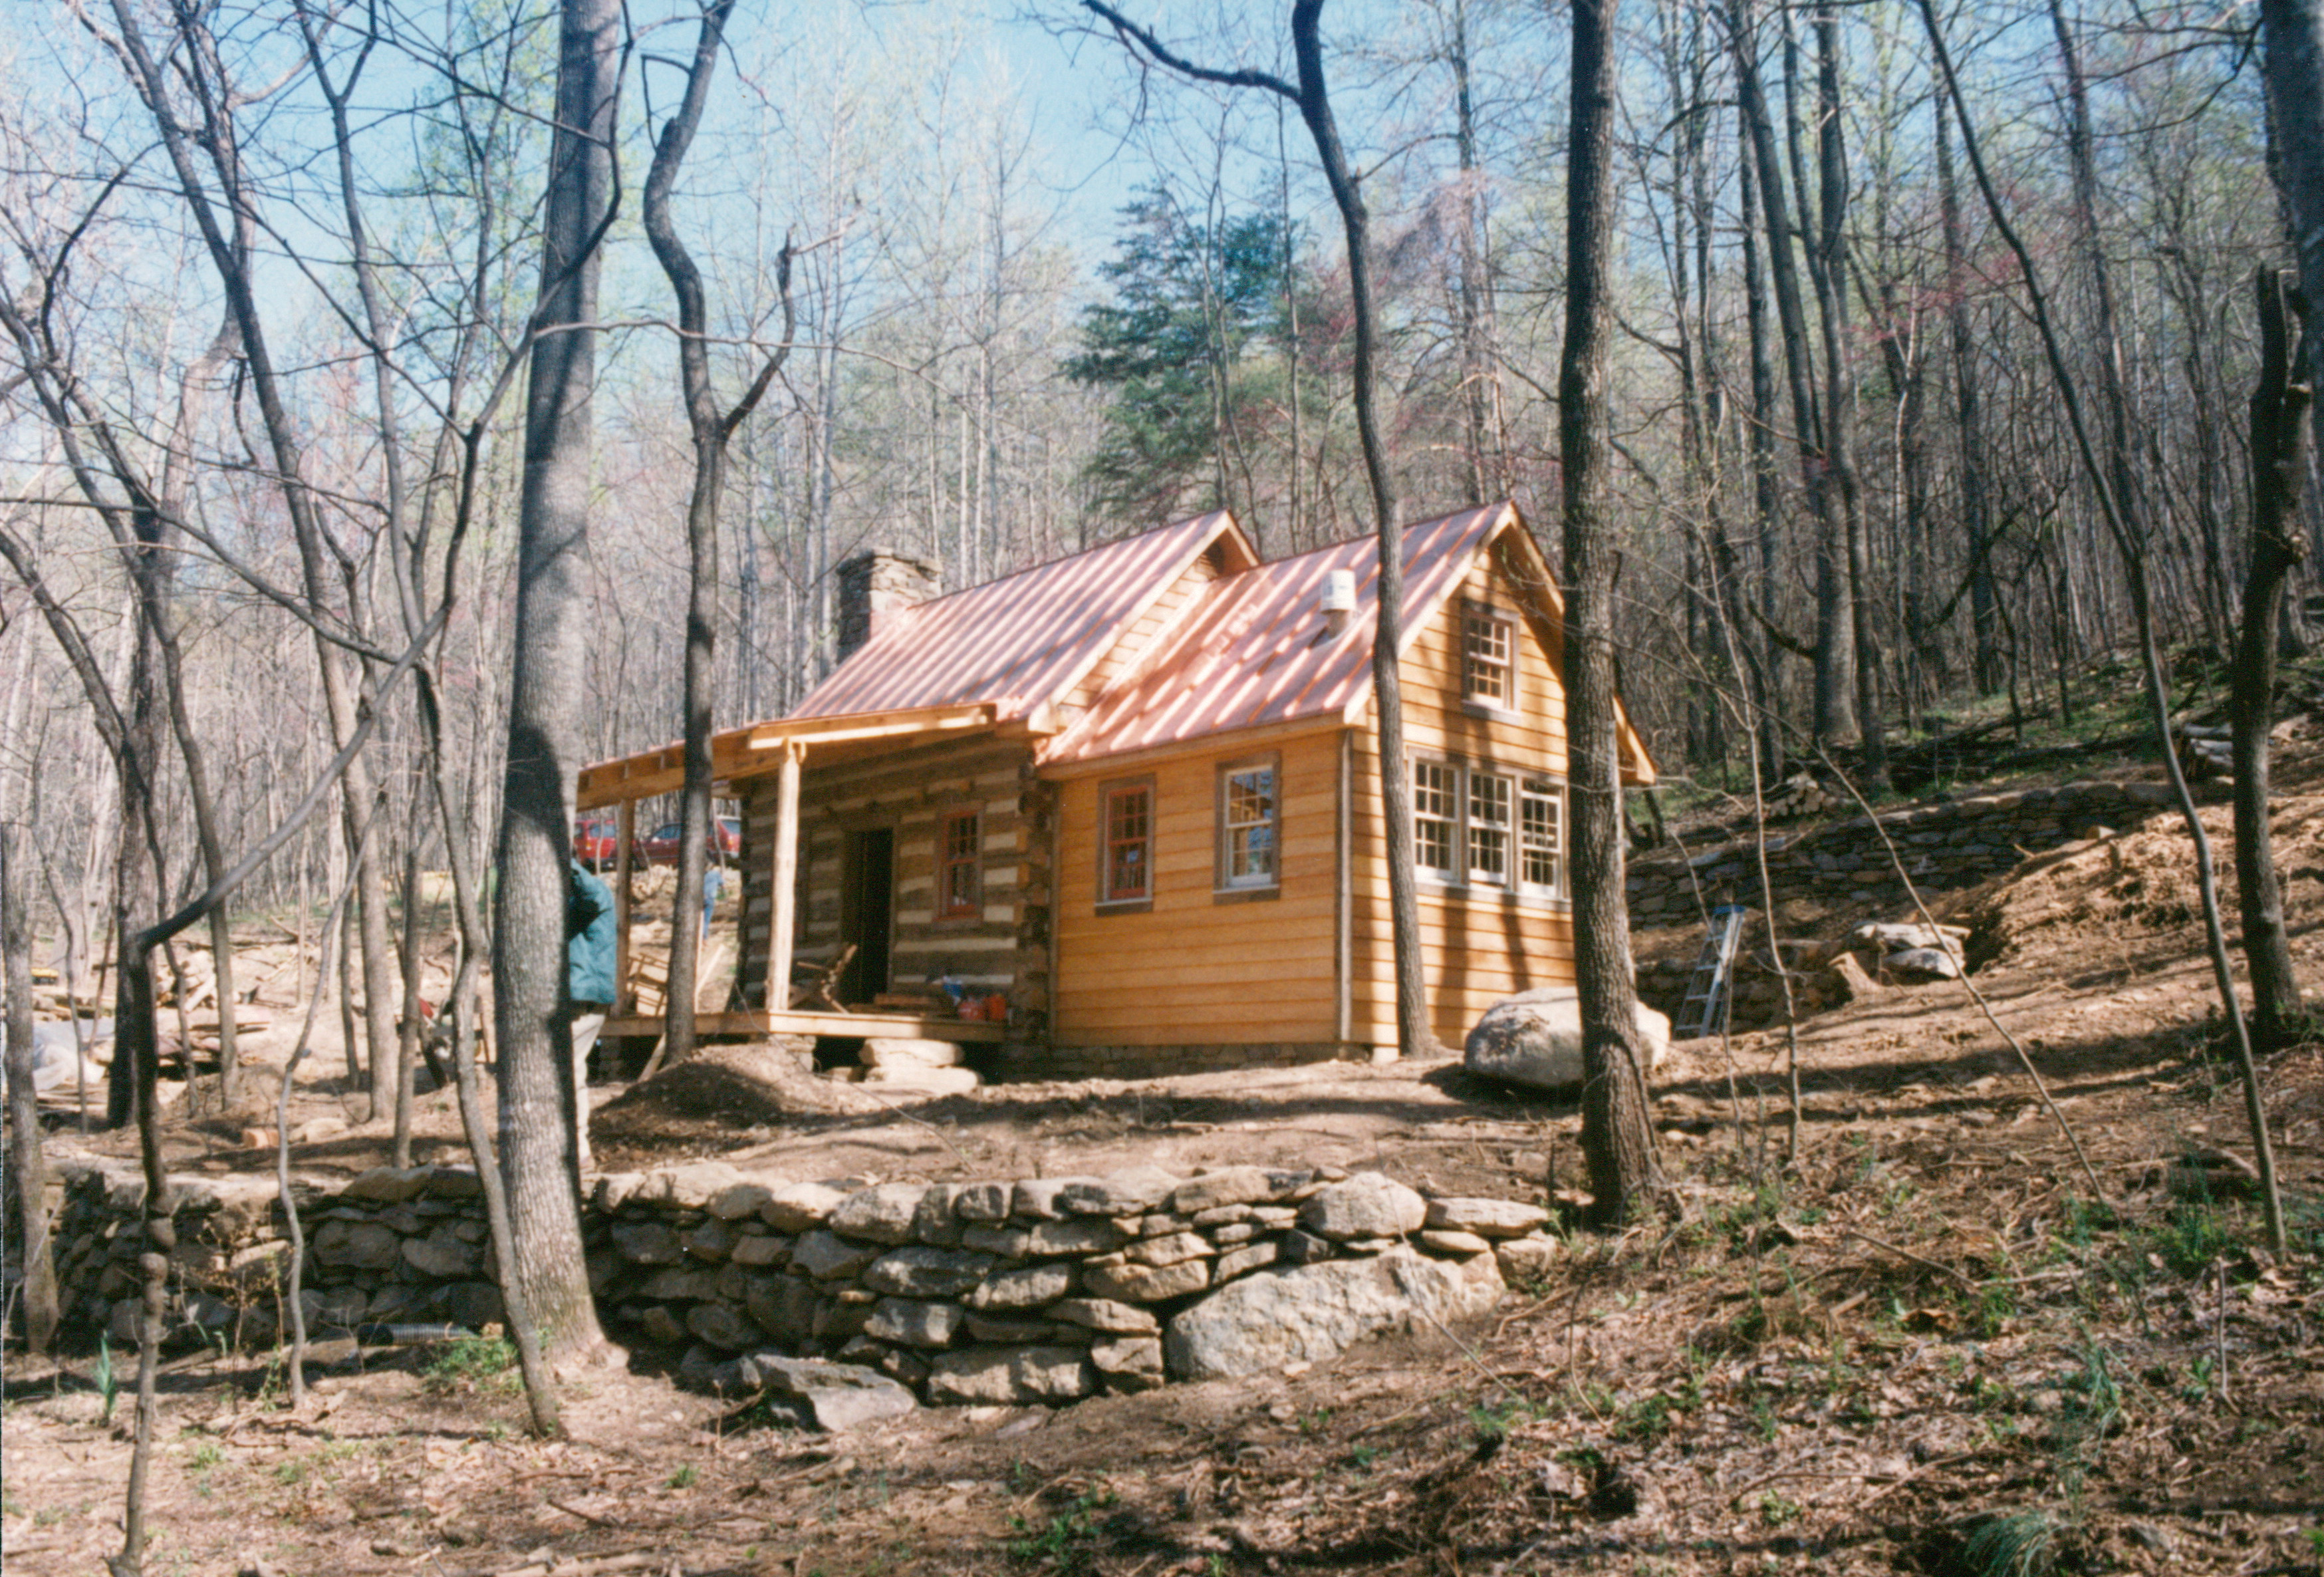 amazing building a rustic cabin #1: Part Four ofu2026 Building a rustic cabin